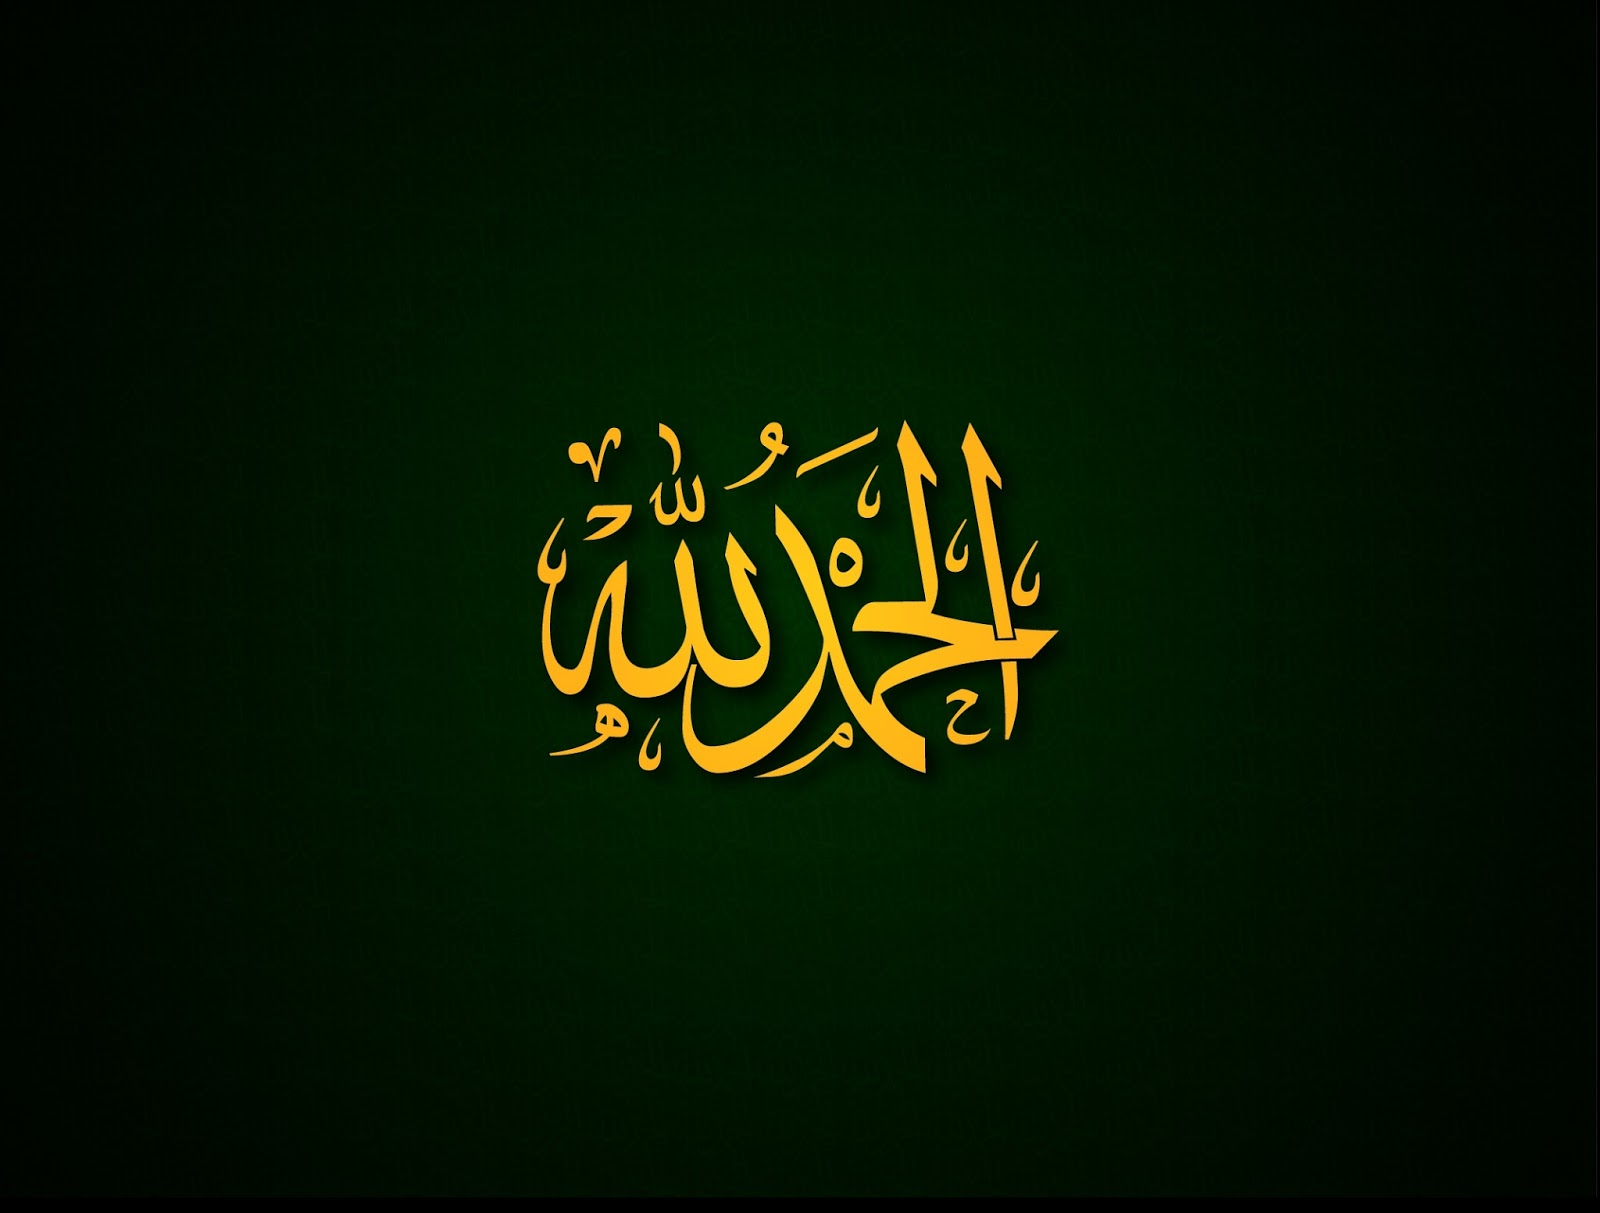 islamic calligraphy hd wallpapers | sunni multimedia (urdu islamic